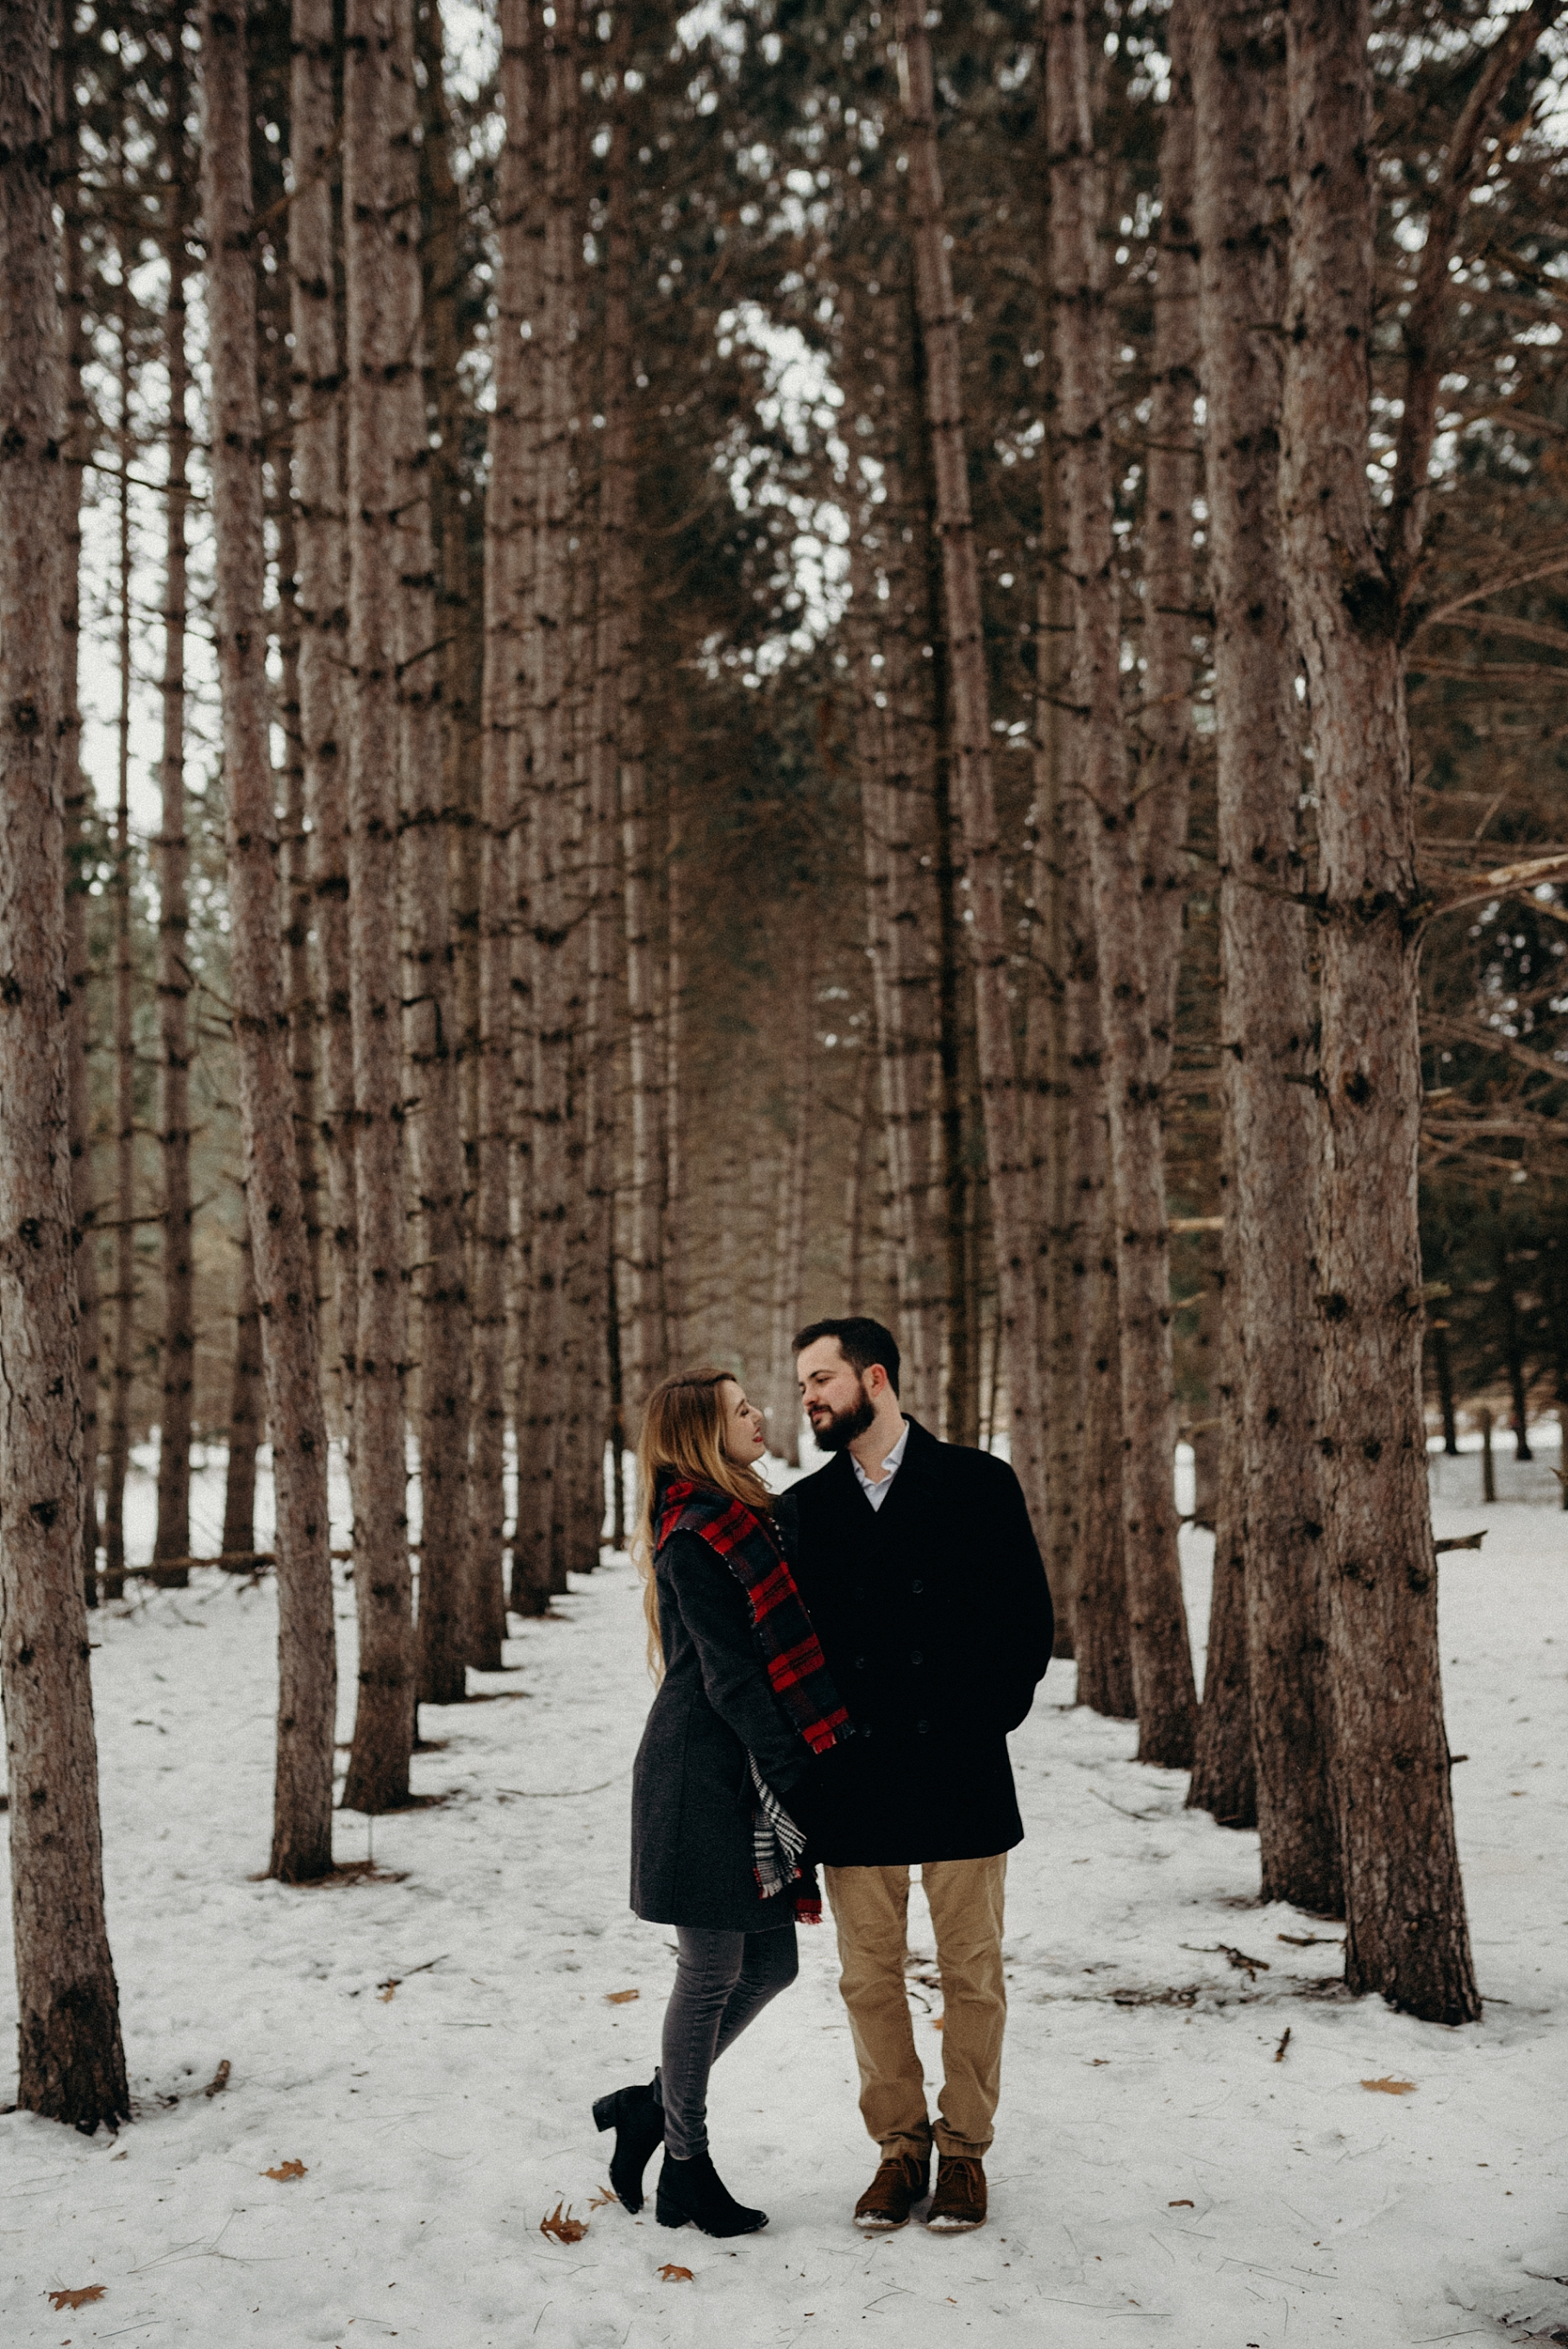 Why You Need a Wedding Website by Mocha Tree Studios Ottawa Toronto Montreal Wedding and Engagement Photographer and Videographer Dark Moody Intimate Authentic Modern Romantic Cinematic Best Candid 6